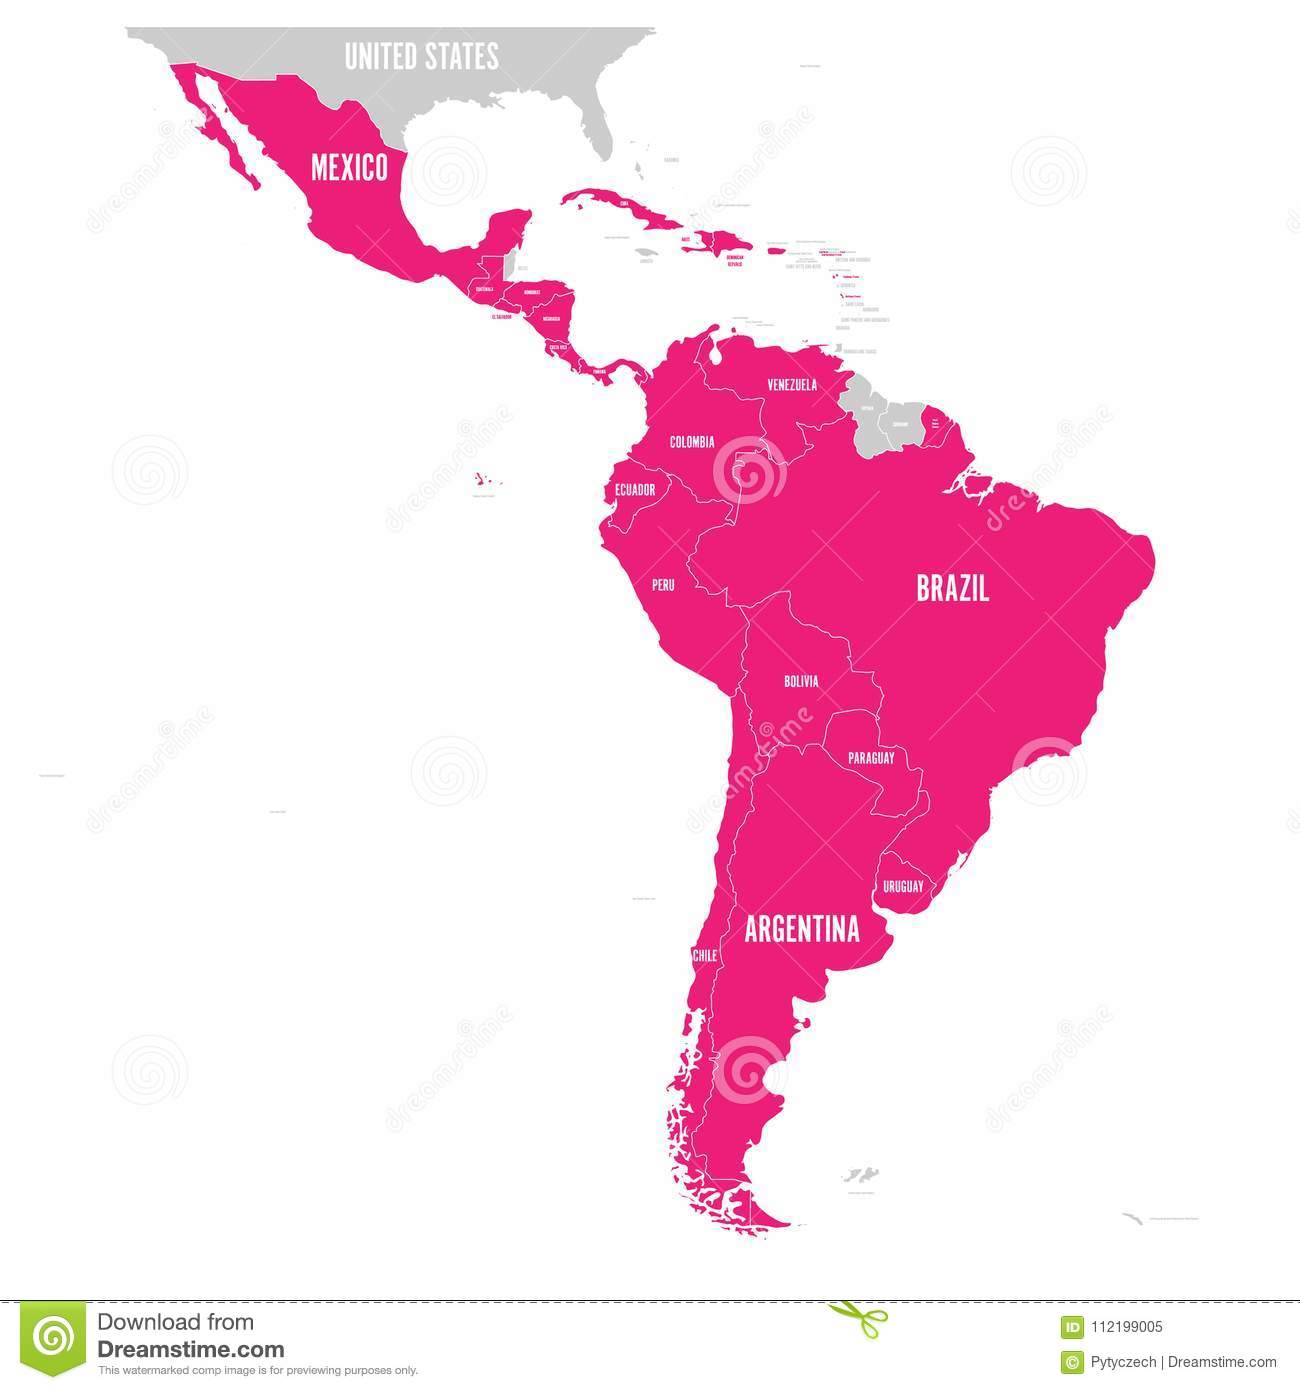 Political map of latin america latin american states pink political map of latin america latin american states pink highlighted in the map of south america central america and gumiabroncs Image collections